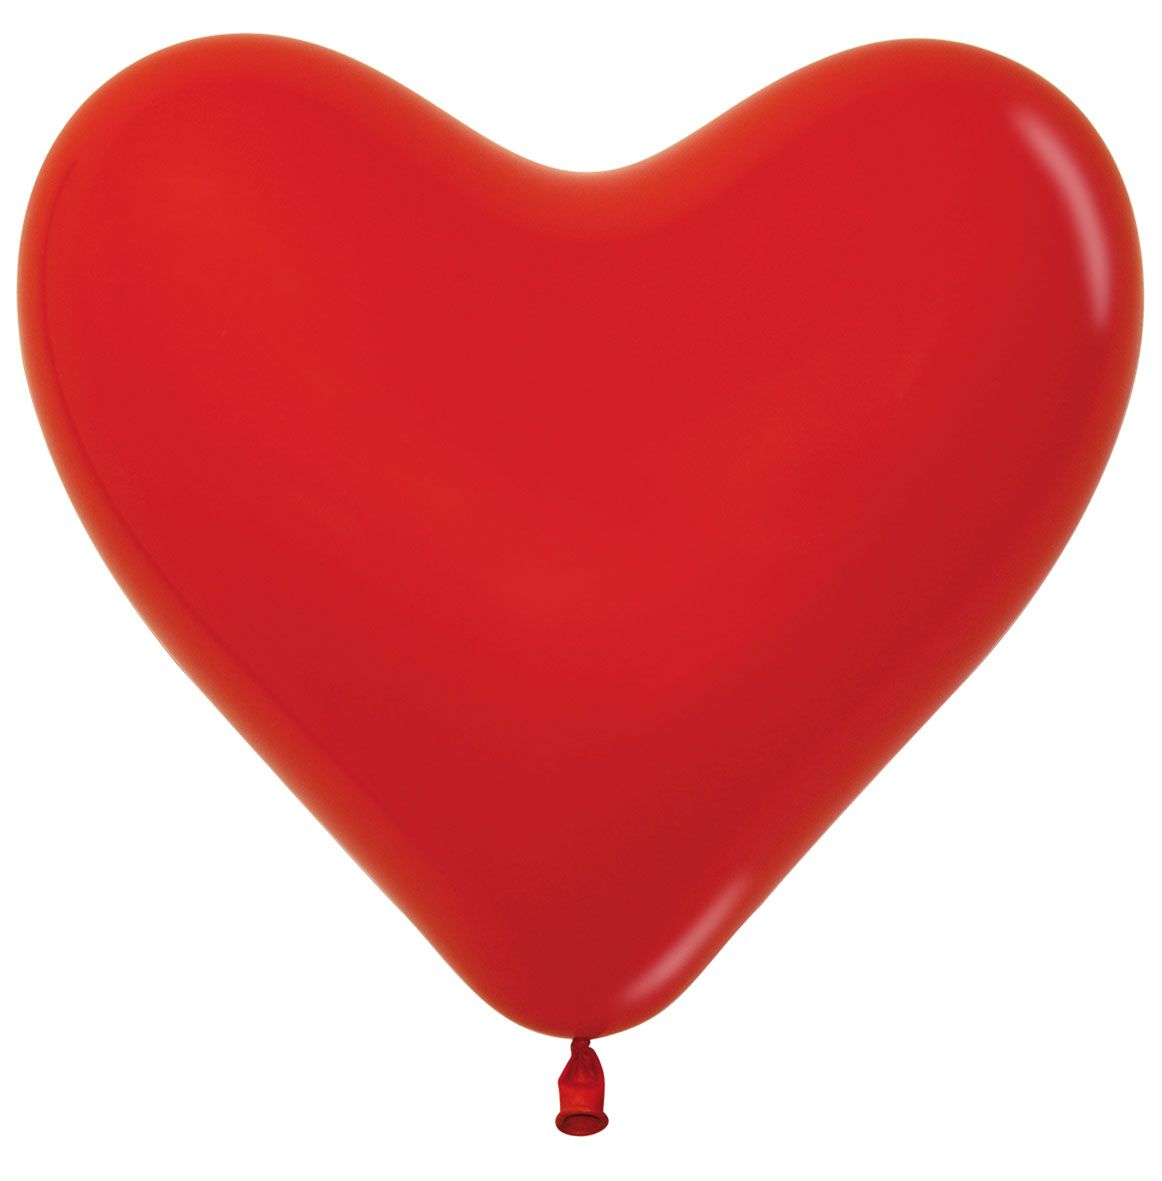 Solid Colour Specialty Latex Balloon Deals